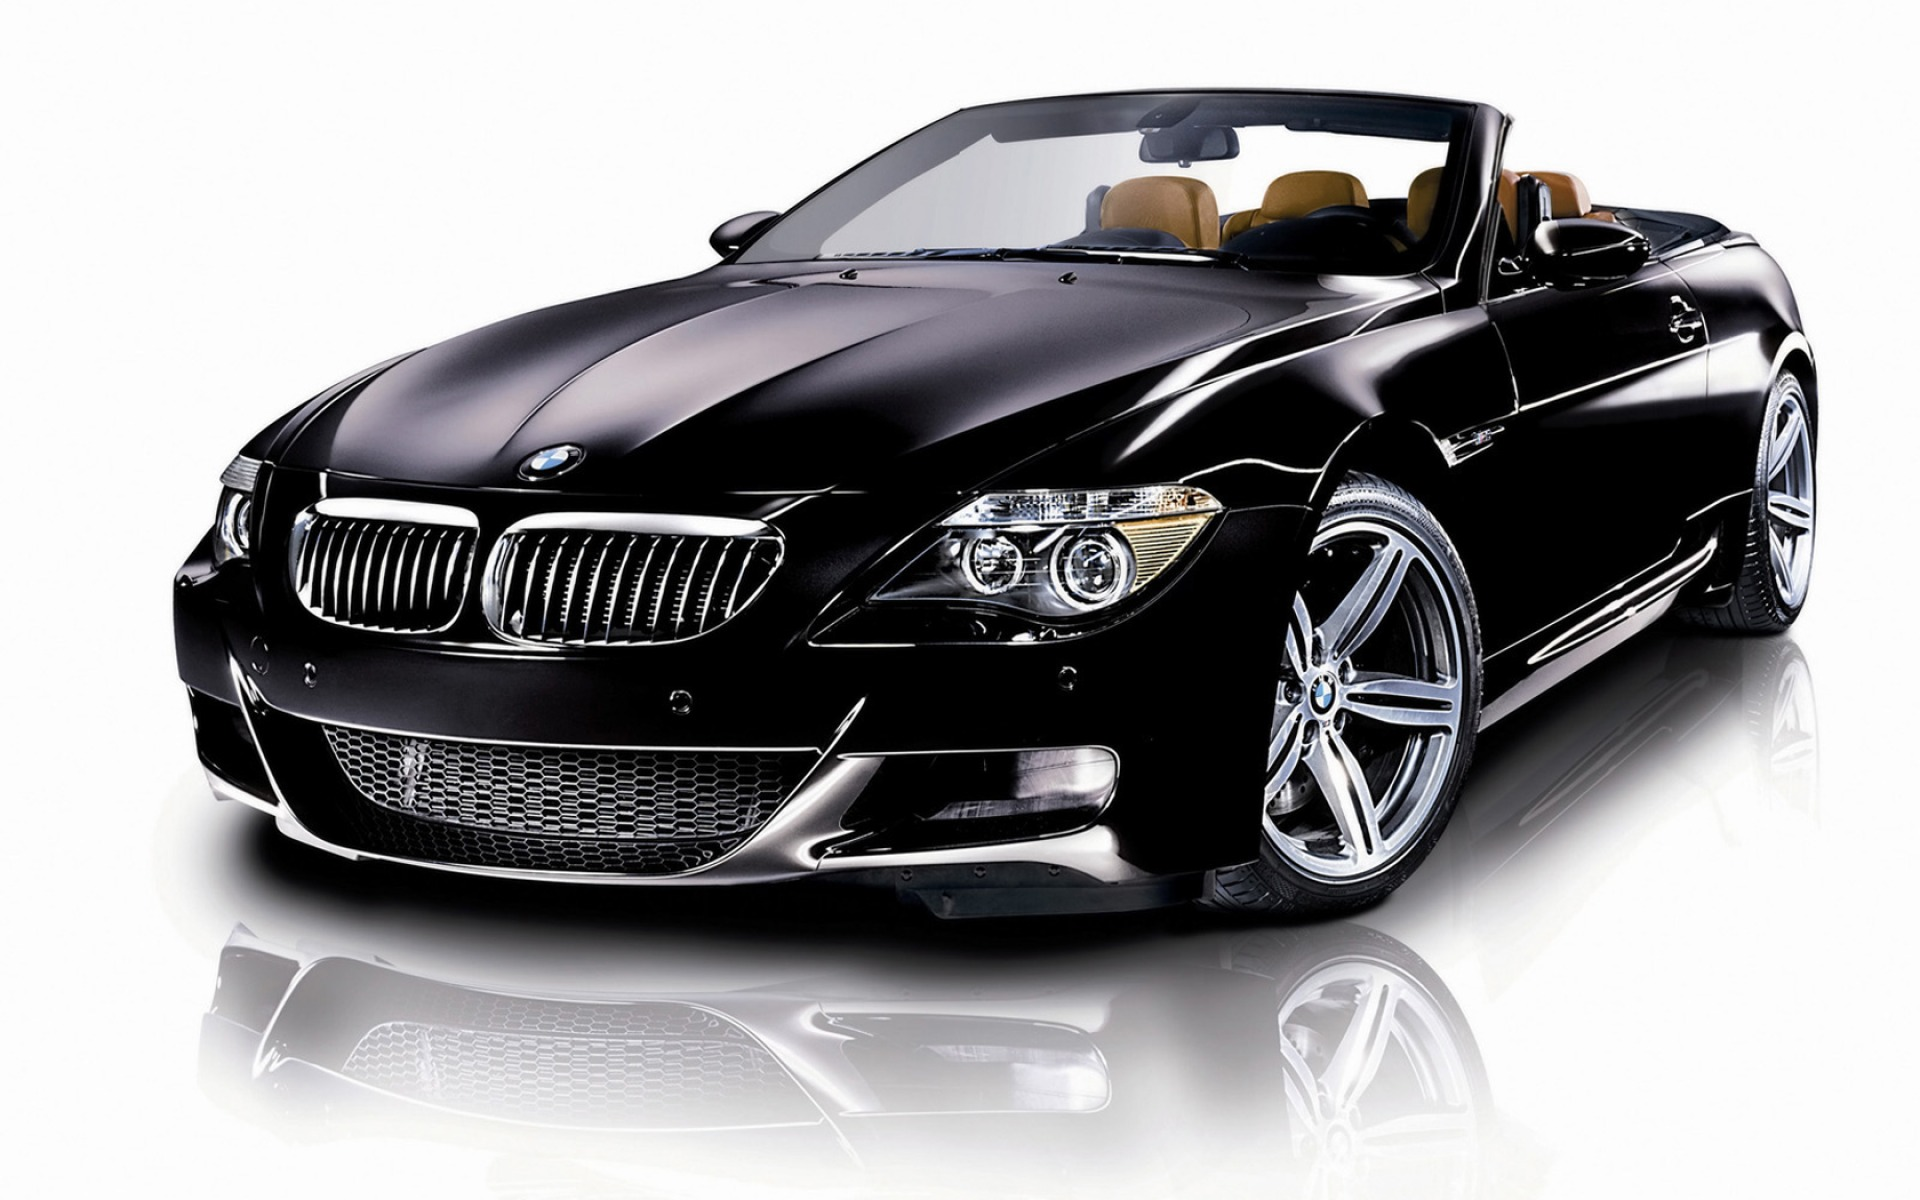 Ultrablogus  Stunning Bmw Car Wallpaper Wallpapers For Free Download About   With Extraordinary Bmw M Convertible Wallpaper Bmw Cars With Delightful Bmw  Interior Also  Ford Mustang Interior In Addition Zenith Interior And Trd Interior As Well As Custom Mustang Interior Parts Additionally Prius V Interior From Allfreedownloadcom With Ultrablogus  Extraordinary Bmw Car Wallpaper Wallpapers For Free Download About   With Delightful Bmw M Convertible Wallpaper Bmw Cars And Stunning Bmw  Interior Also  Ford Mustang Interior In Addition Zenith Interior From Allfreedownloadcom